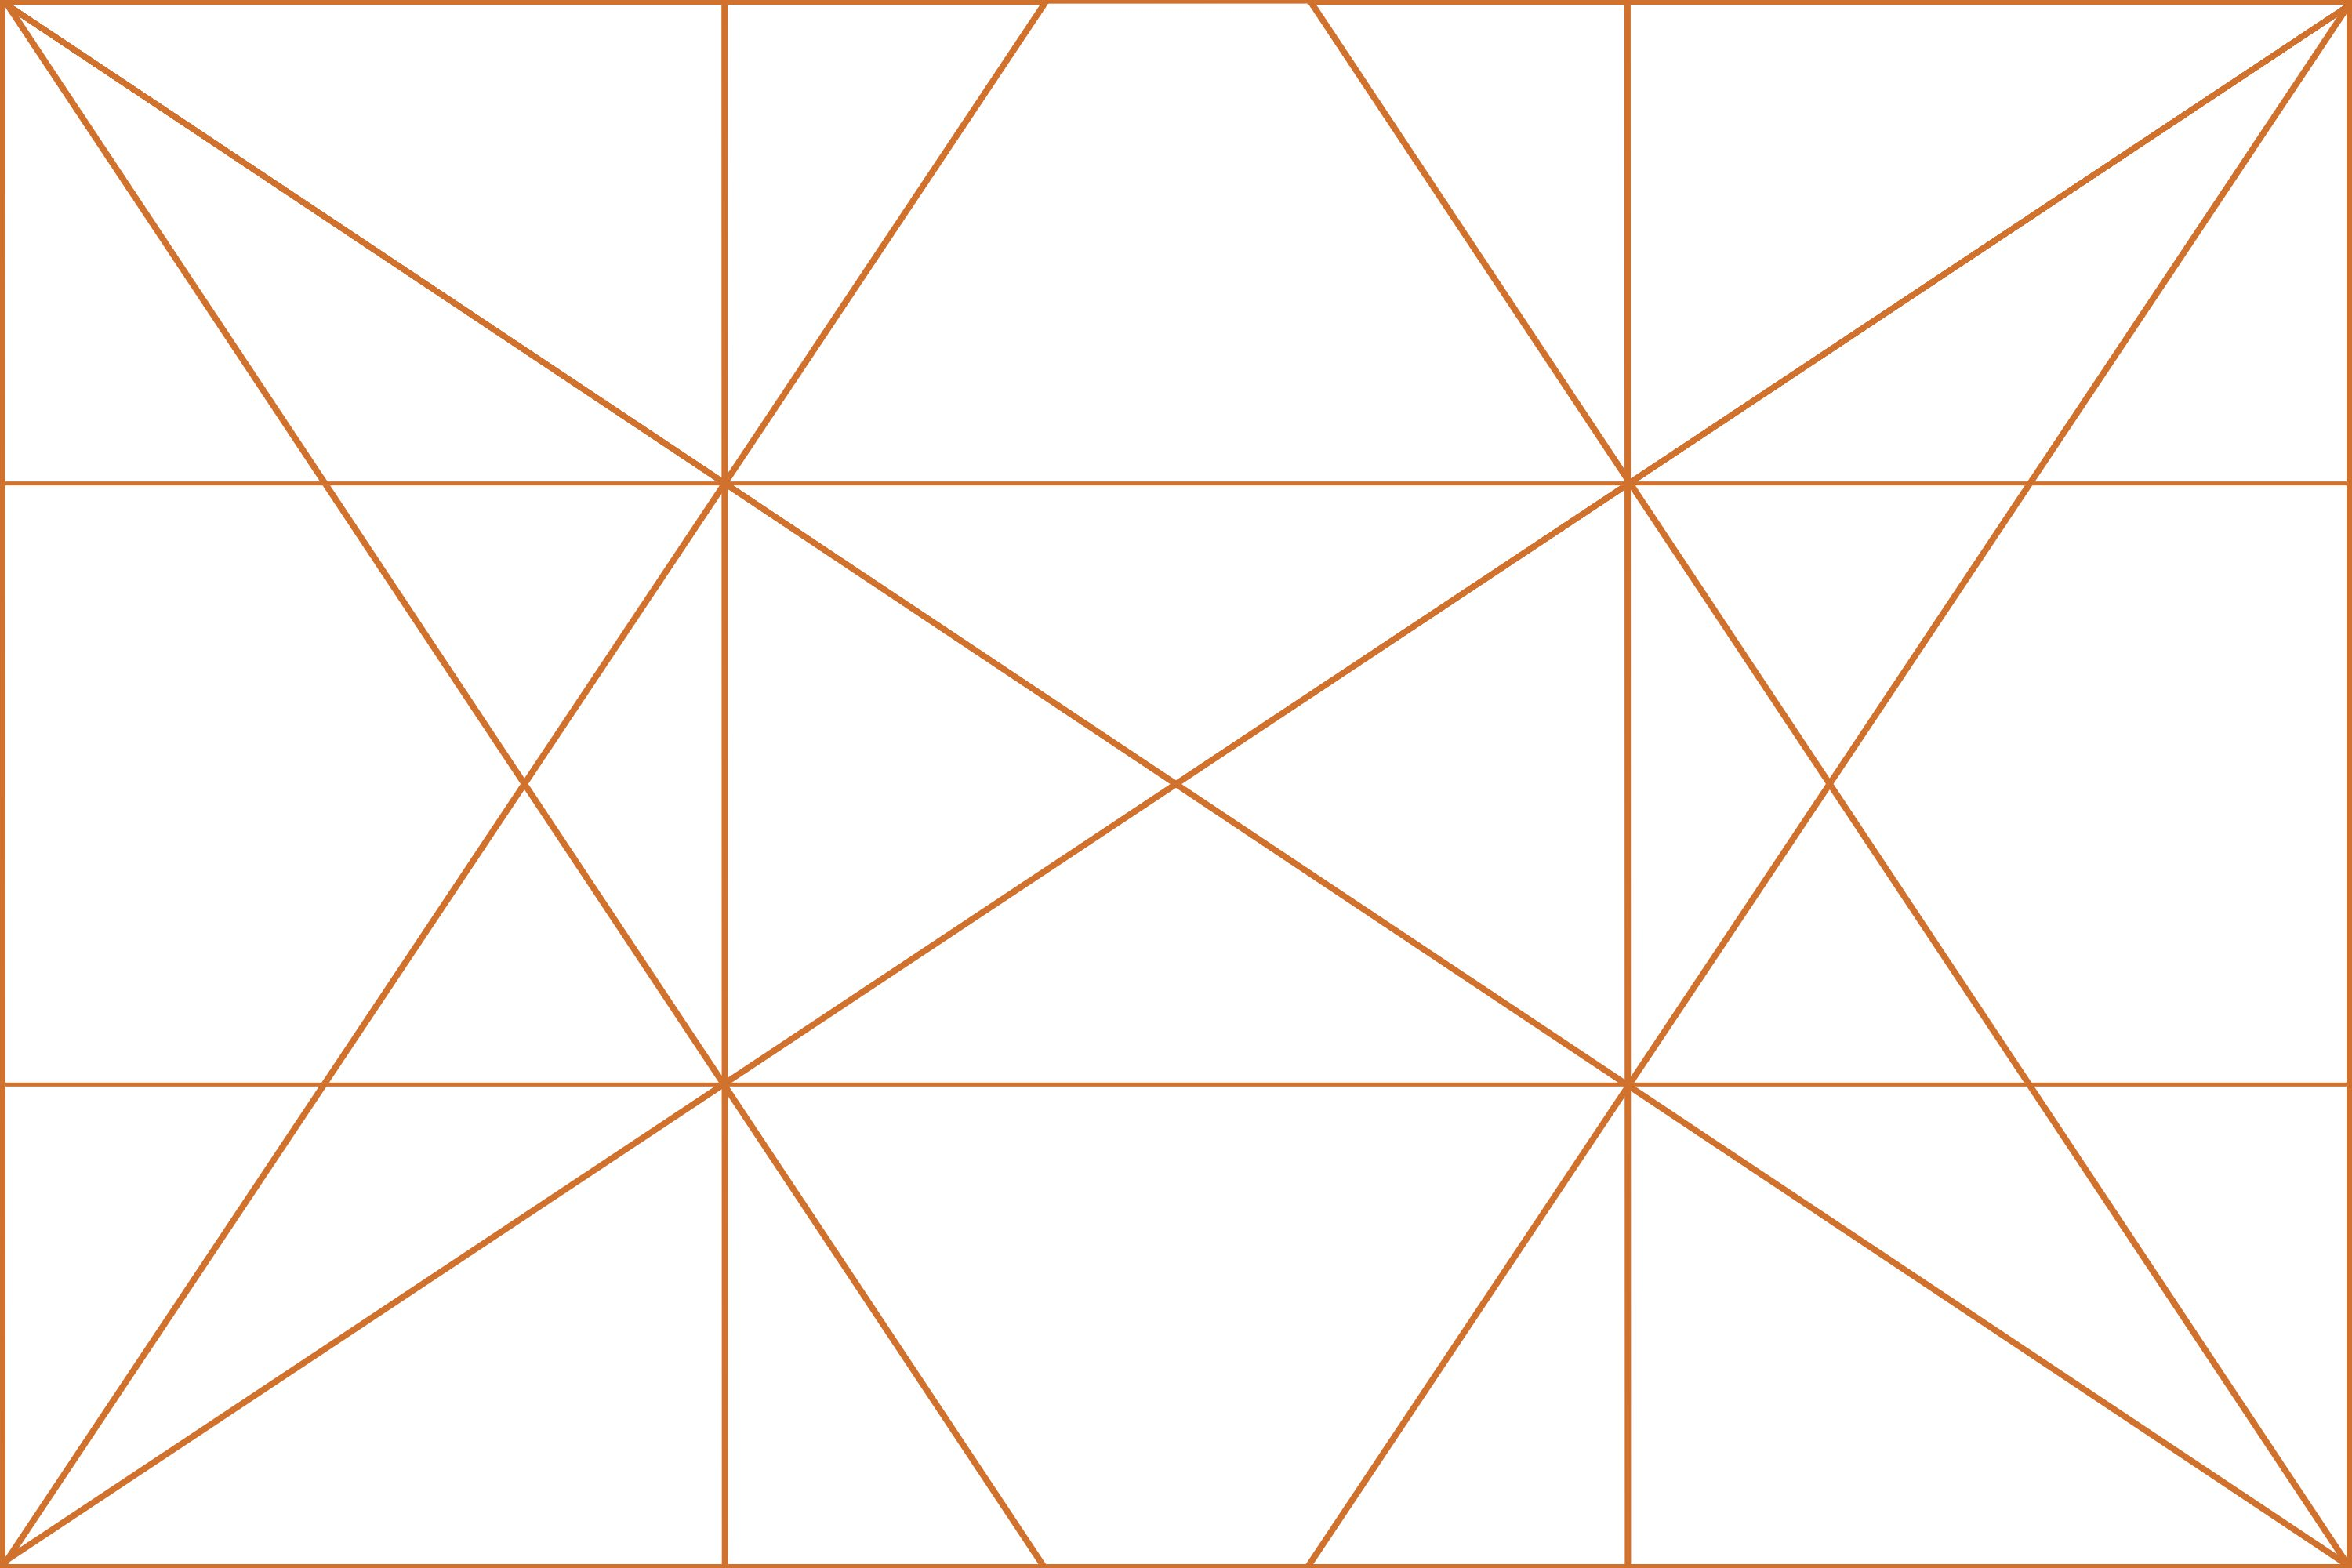 Dynamic Symmetry Grid, made by Steve Kaye